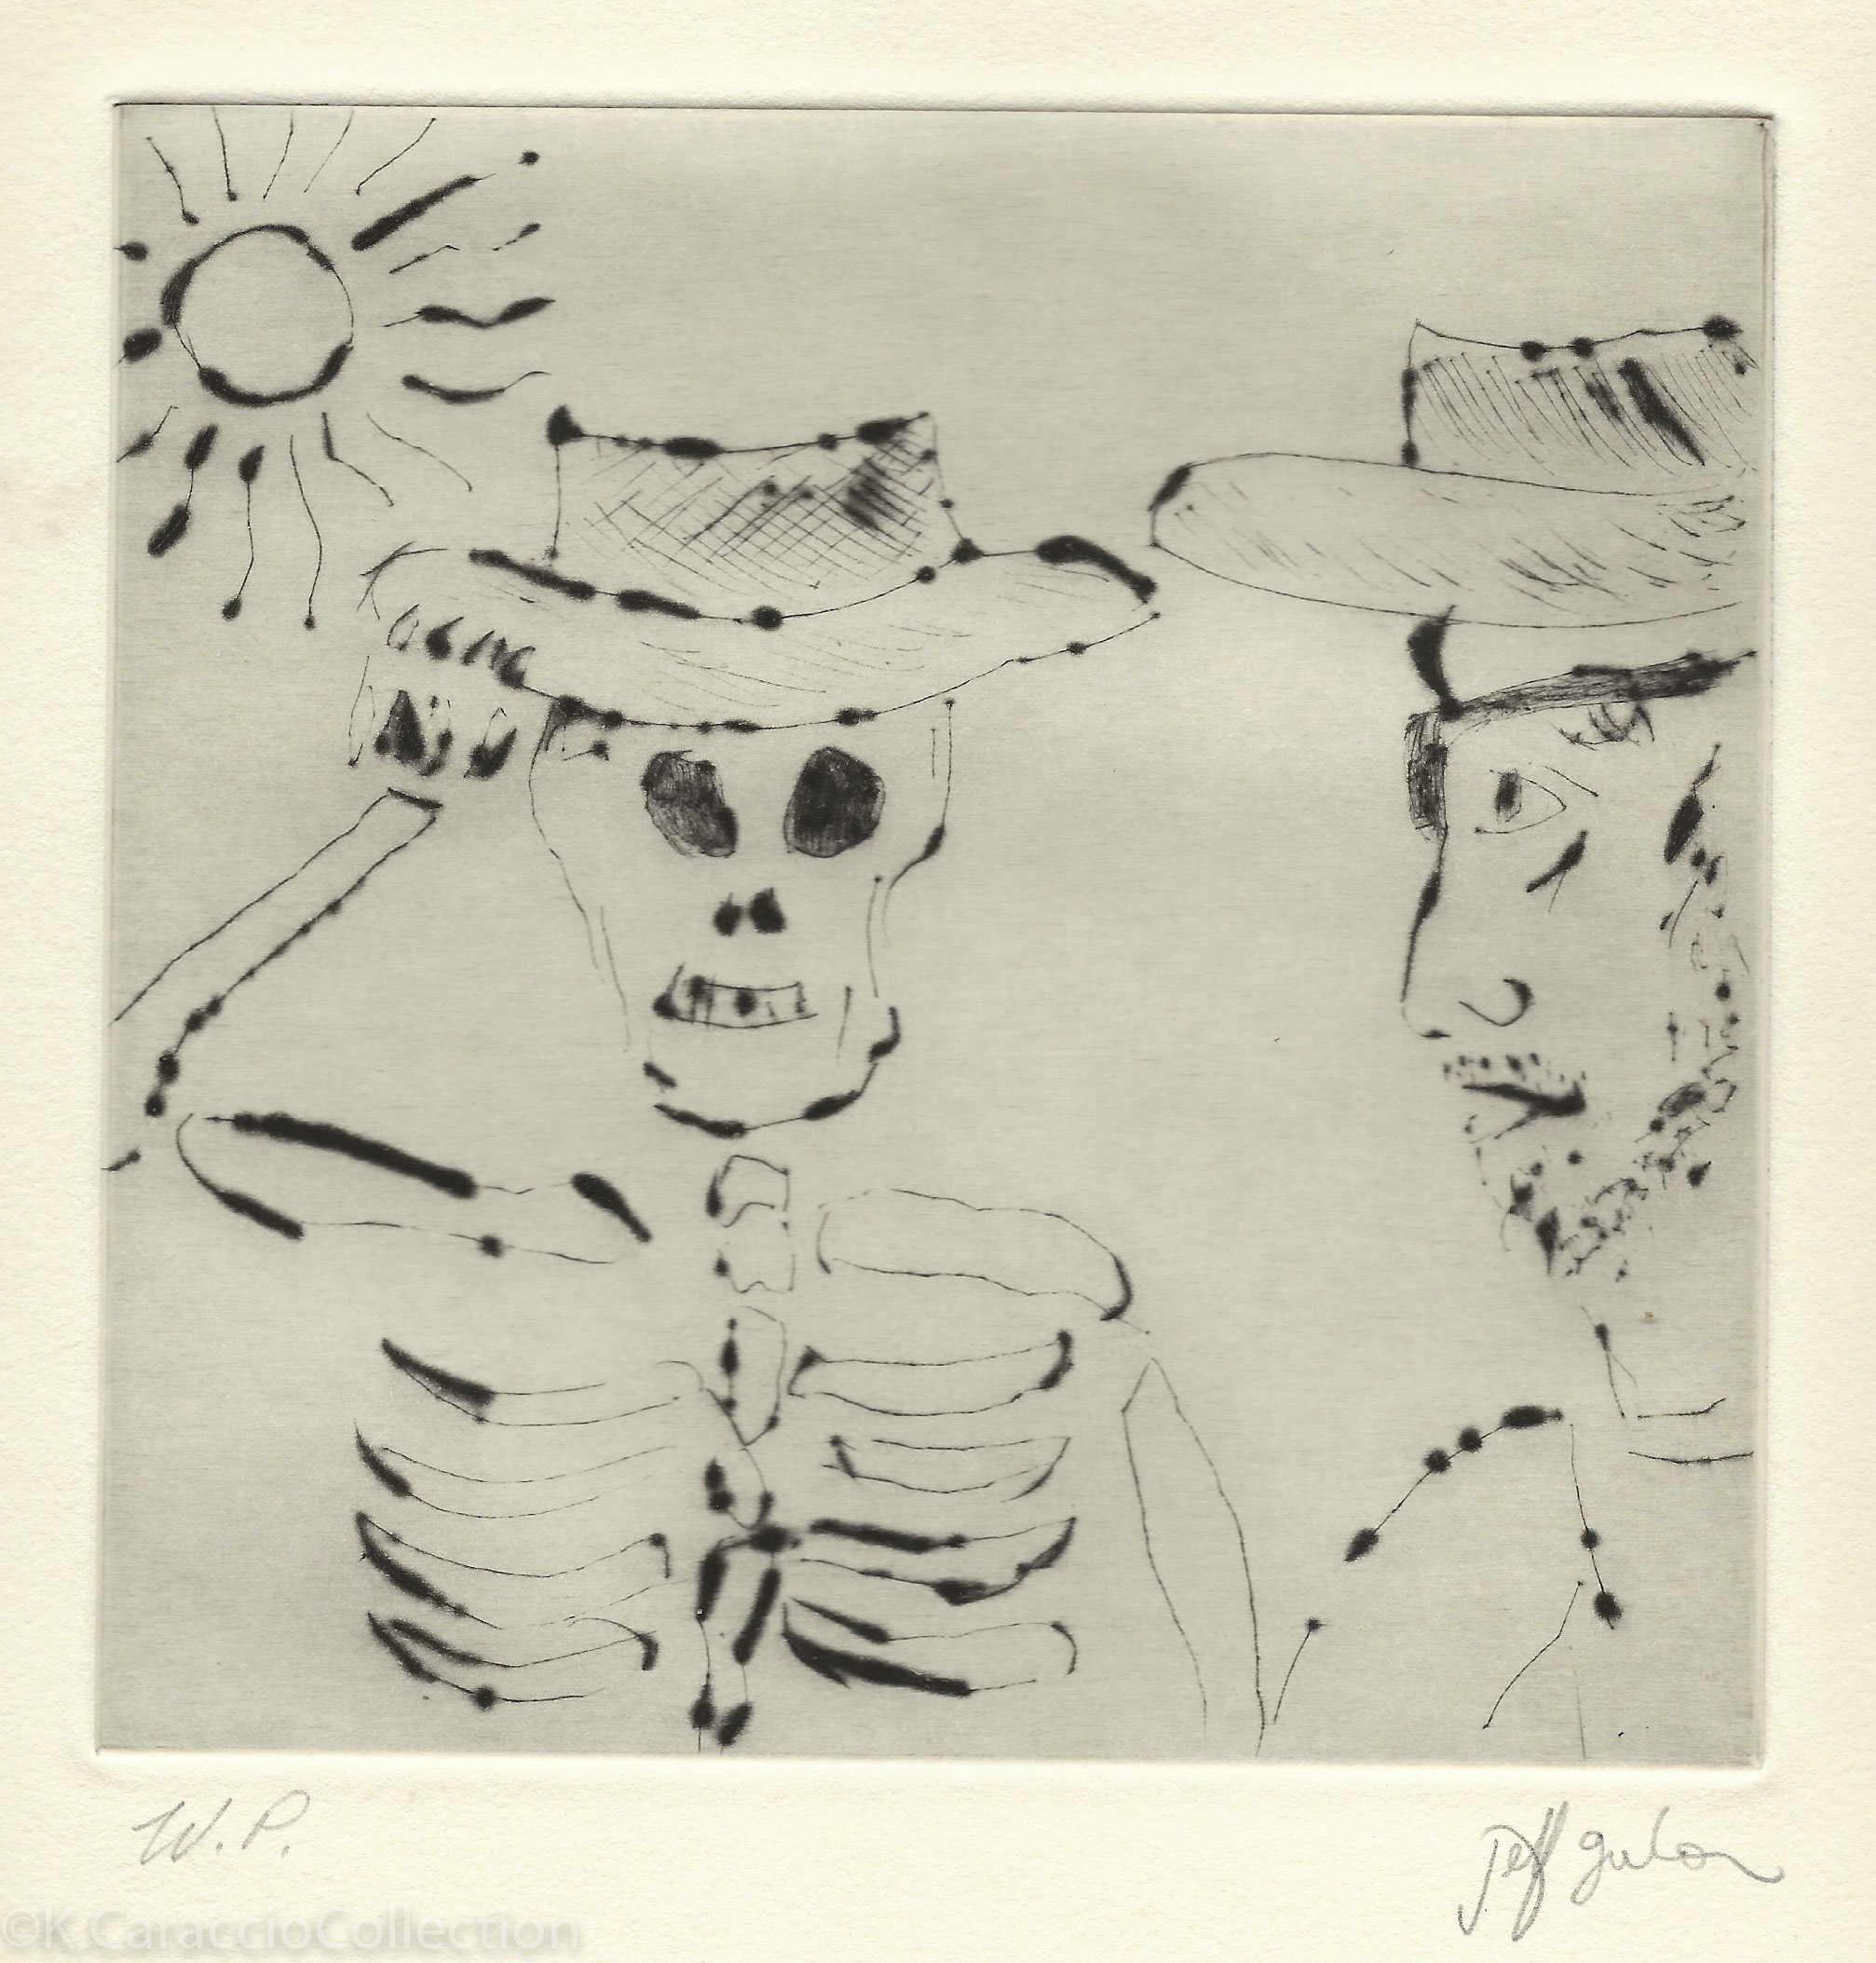 Self Portrait with Skeleton King, 1999